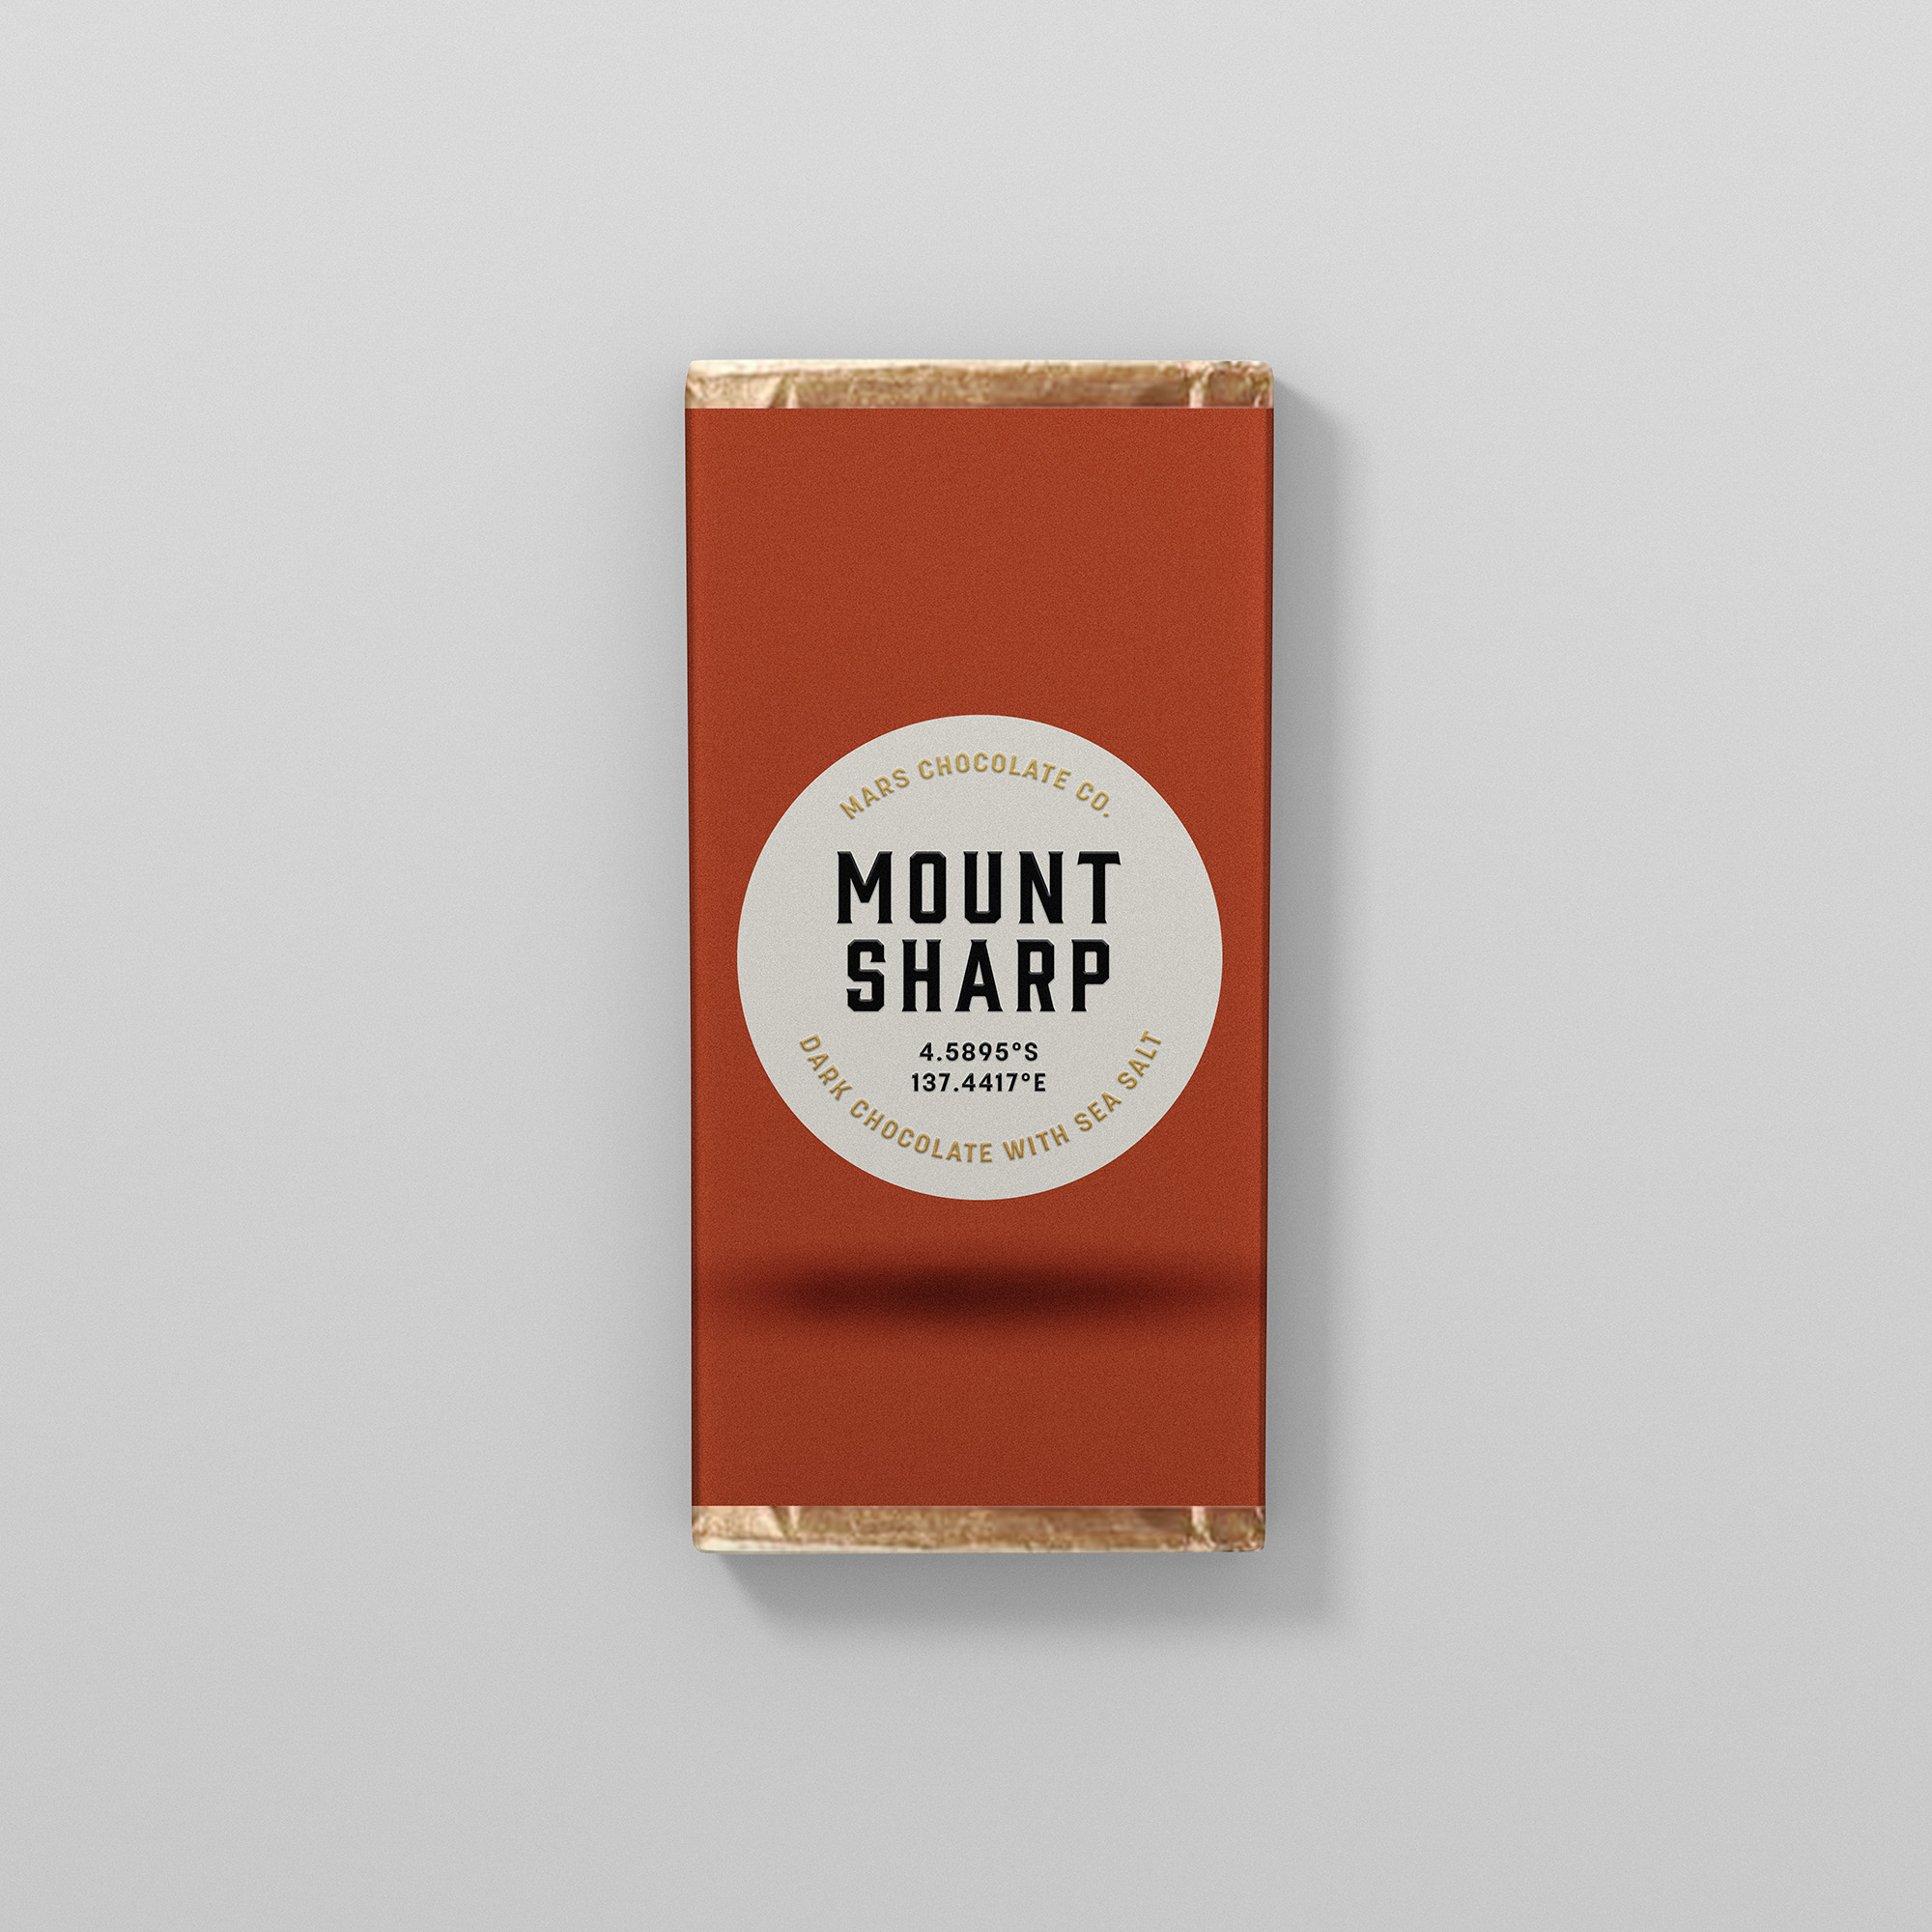 Mount Sharp dark chocolate packaging Franziska Böttcher